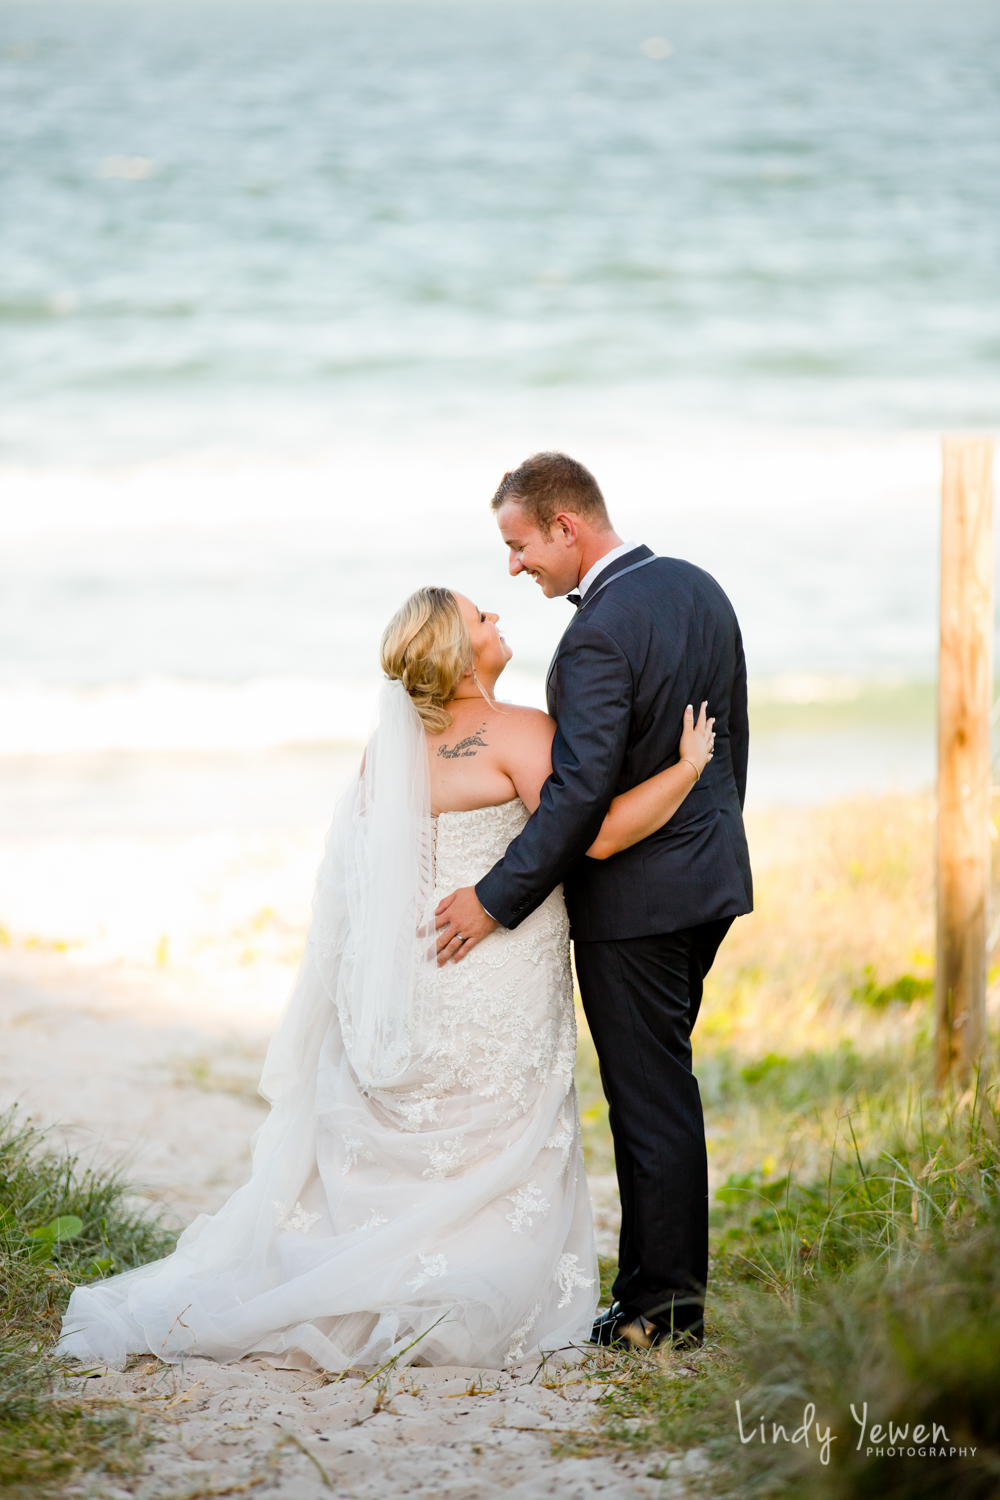 Bribie-Island-wedding-photographer-Chloe-Adam 492.jpg